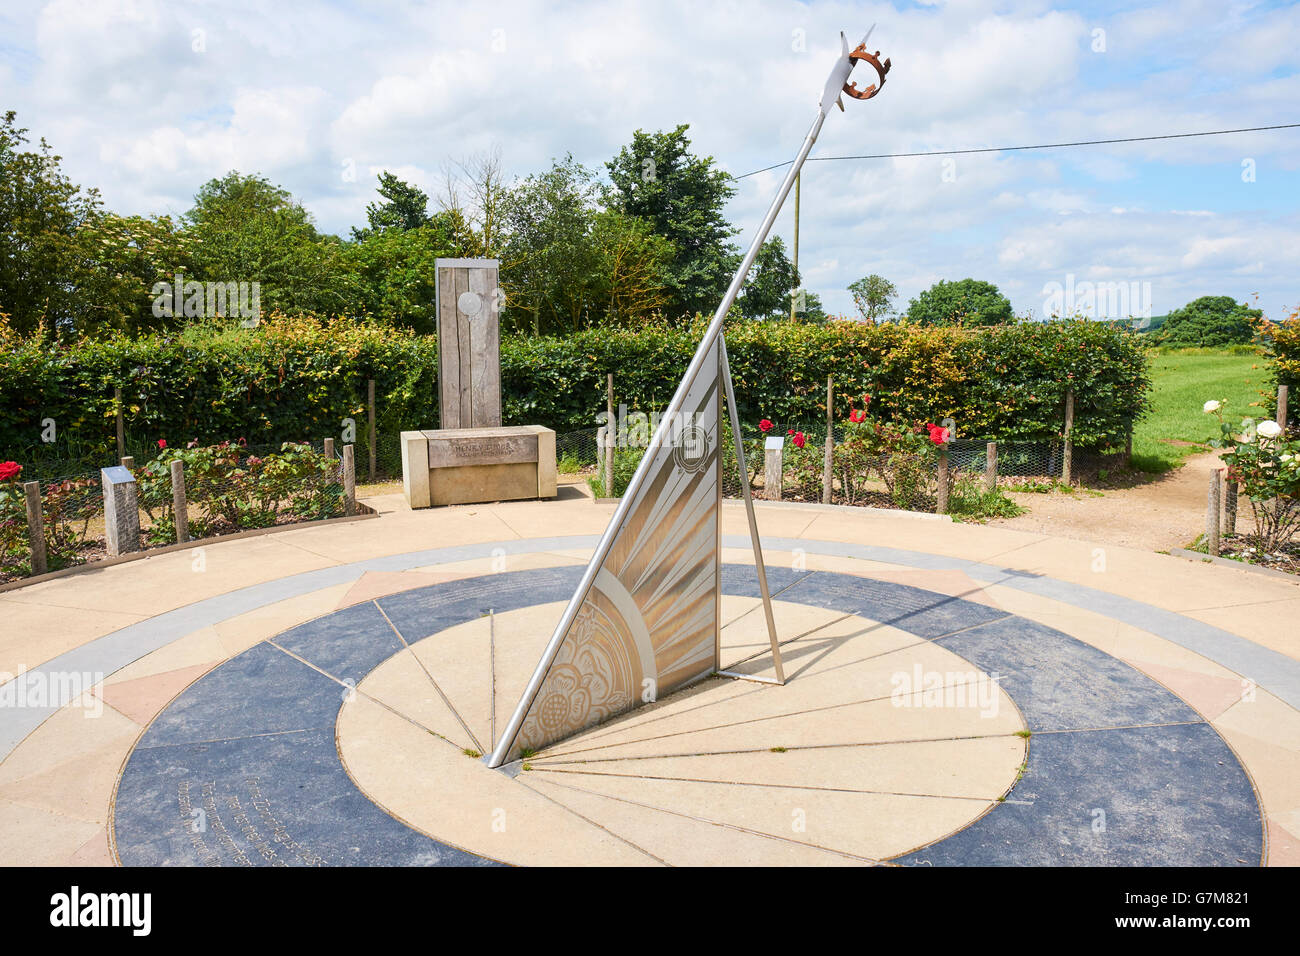 Sundial Memorial Bosworth Heritage Centre And Country Park Sutton Cheney Leicestershire UK - Stock Image